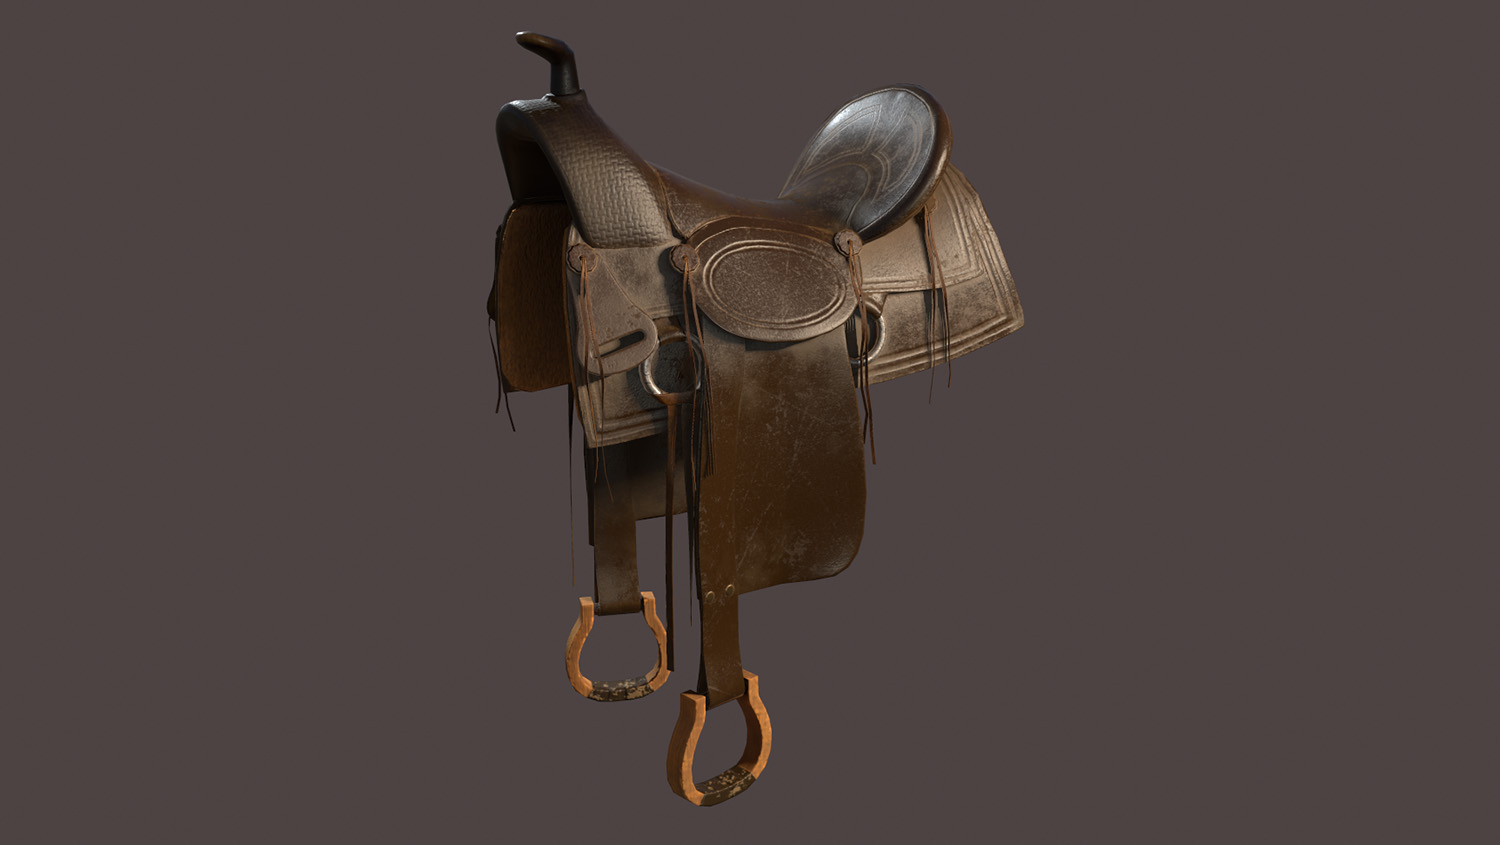 render of a saddle